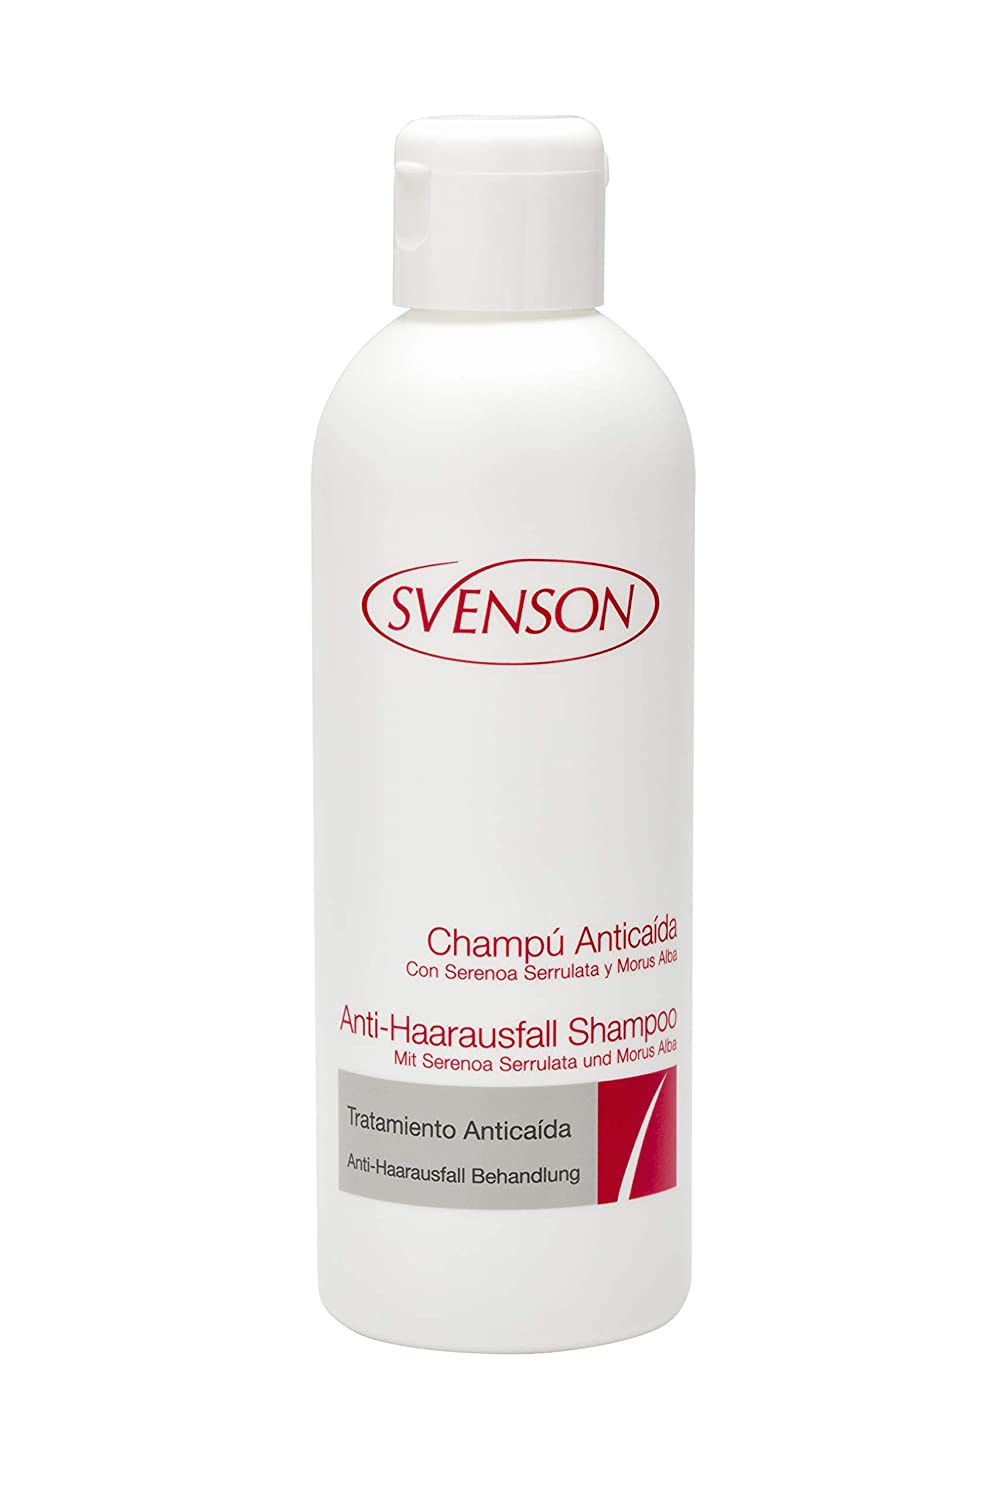 Svenson Champú Anticaida - 200 ml.: Amazon.es: Belleza